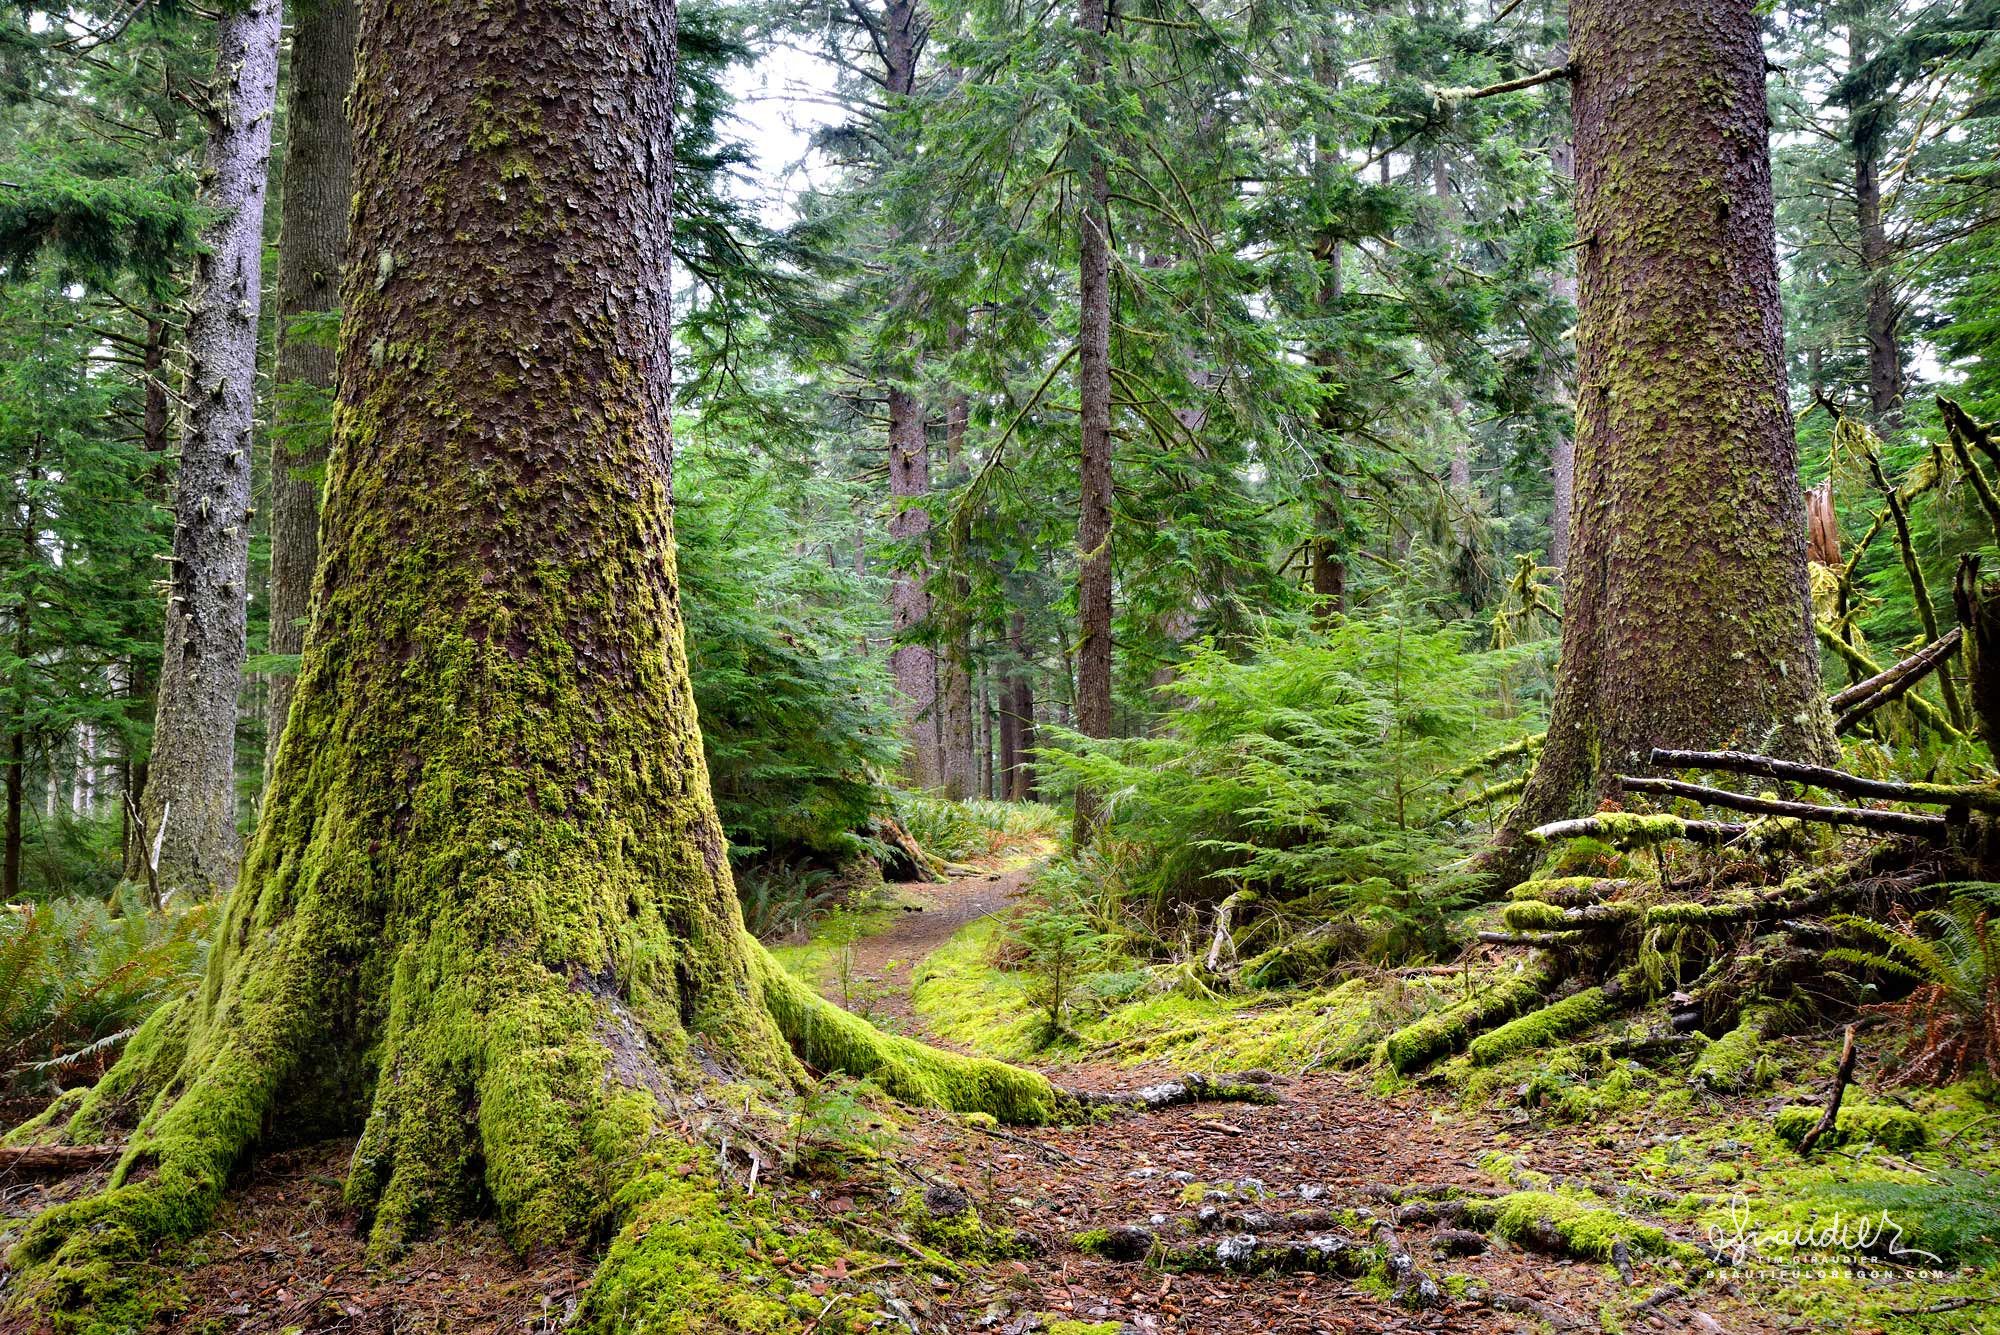 A Sitka Spruce with magnificent buttressed roots spans the trail at Cape Ridge. Siuslaw National Forest, Oregon Coast Range photography.